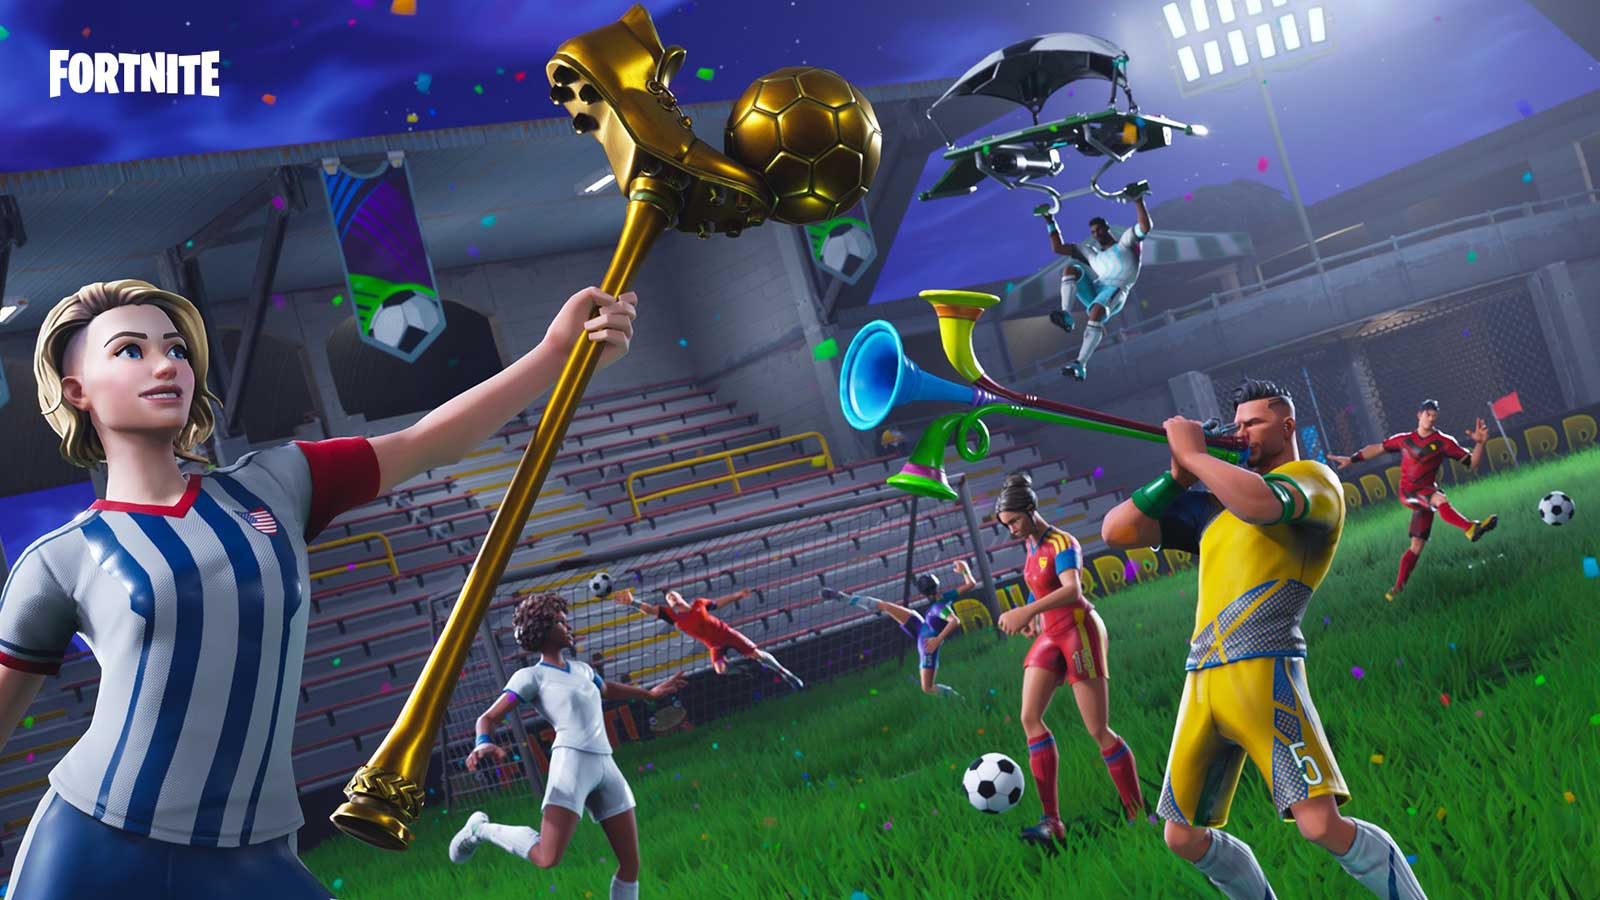 photo image 'Fortnite' marks World Cup with stadium and goal scoring challenges